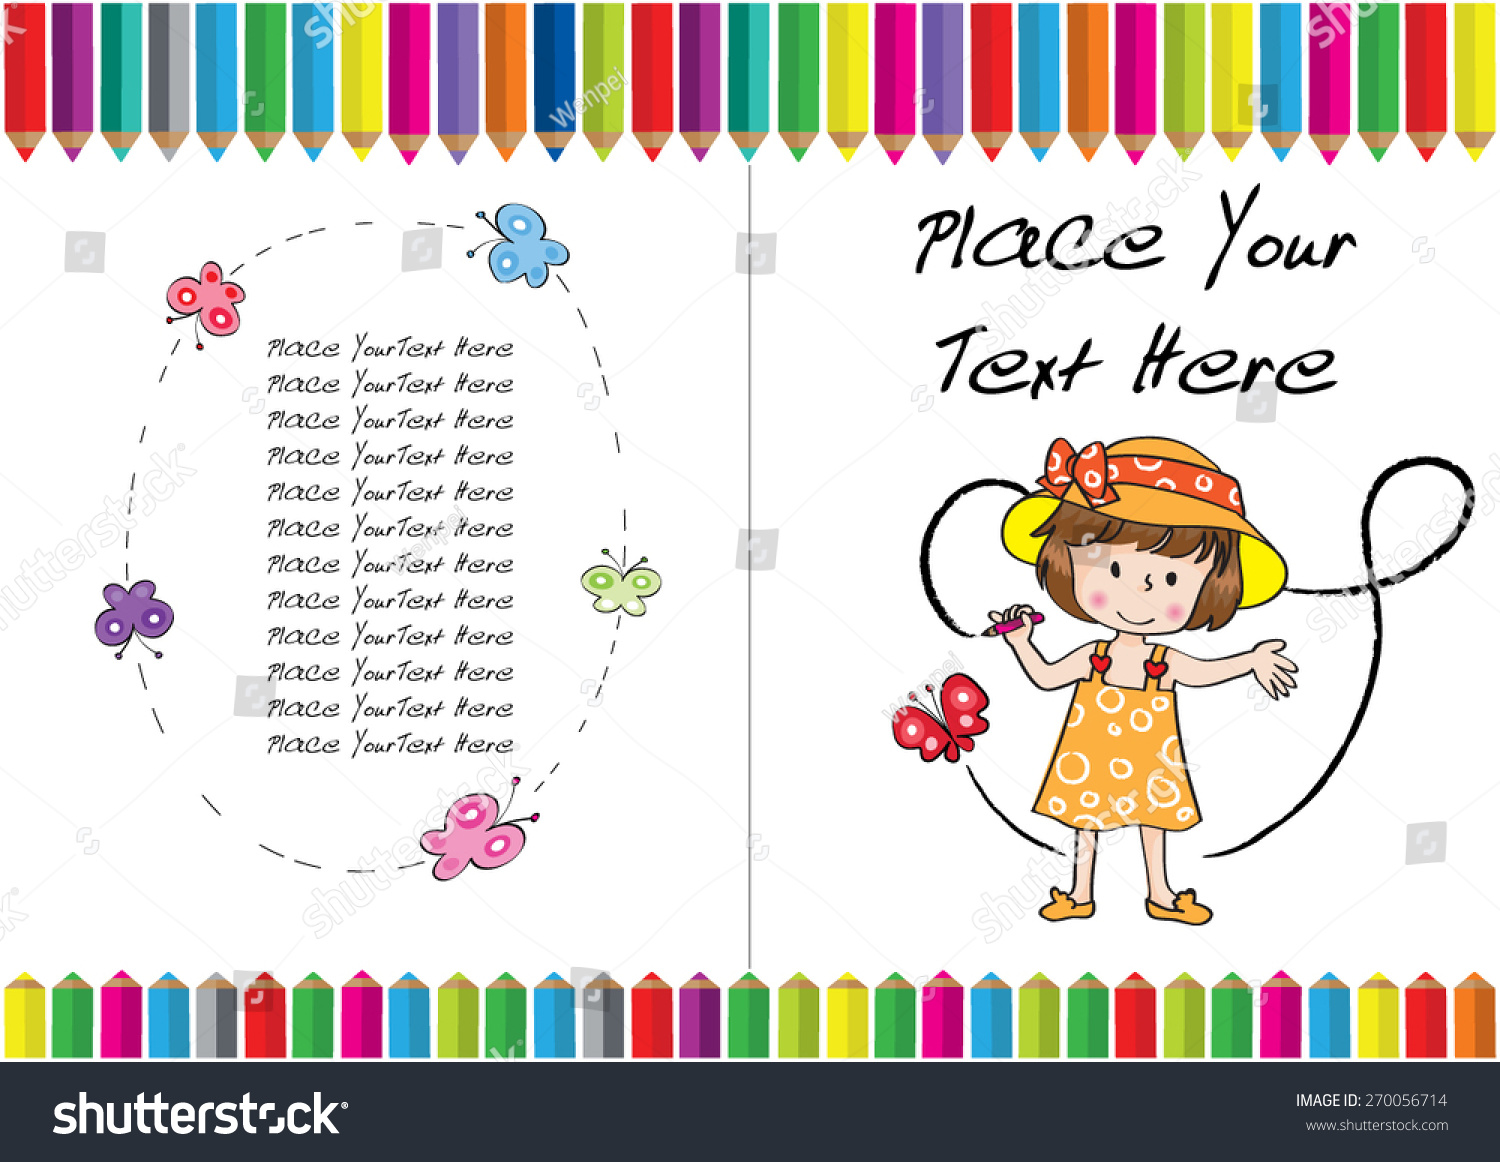 Kids Coloring Book Cover ~ Kids coloring book cover design stock vector